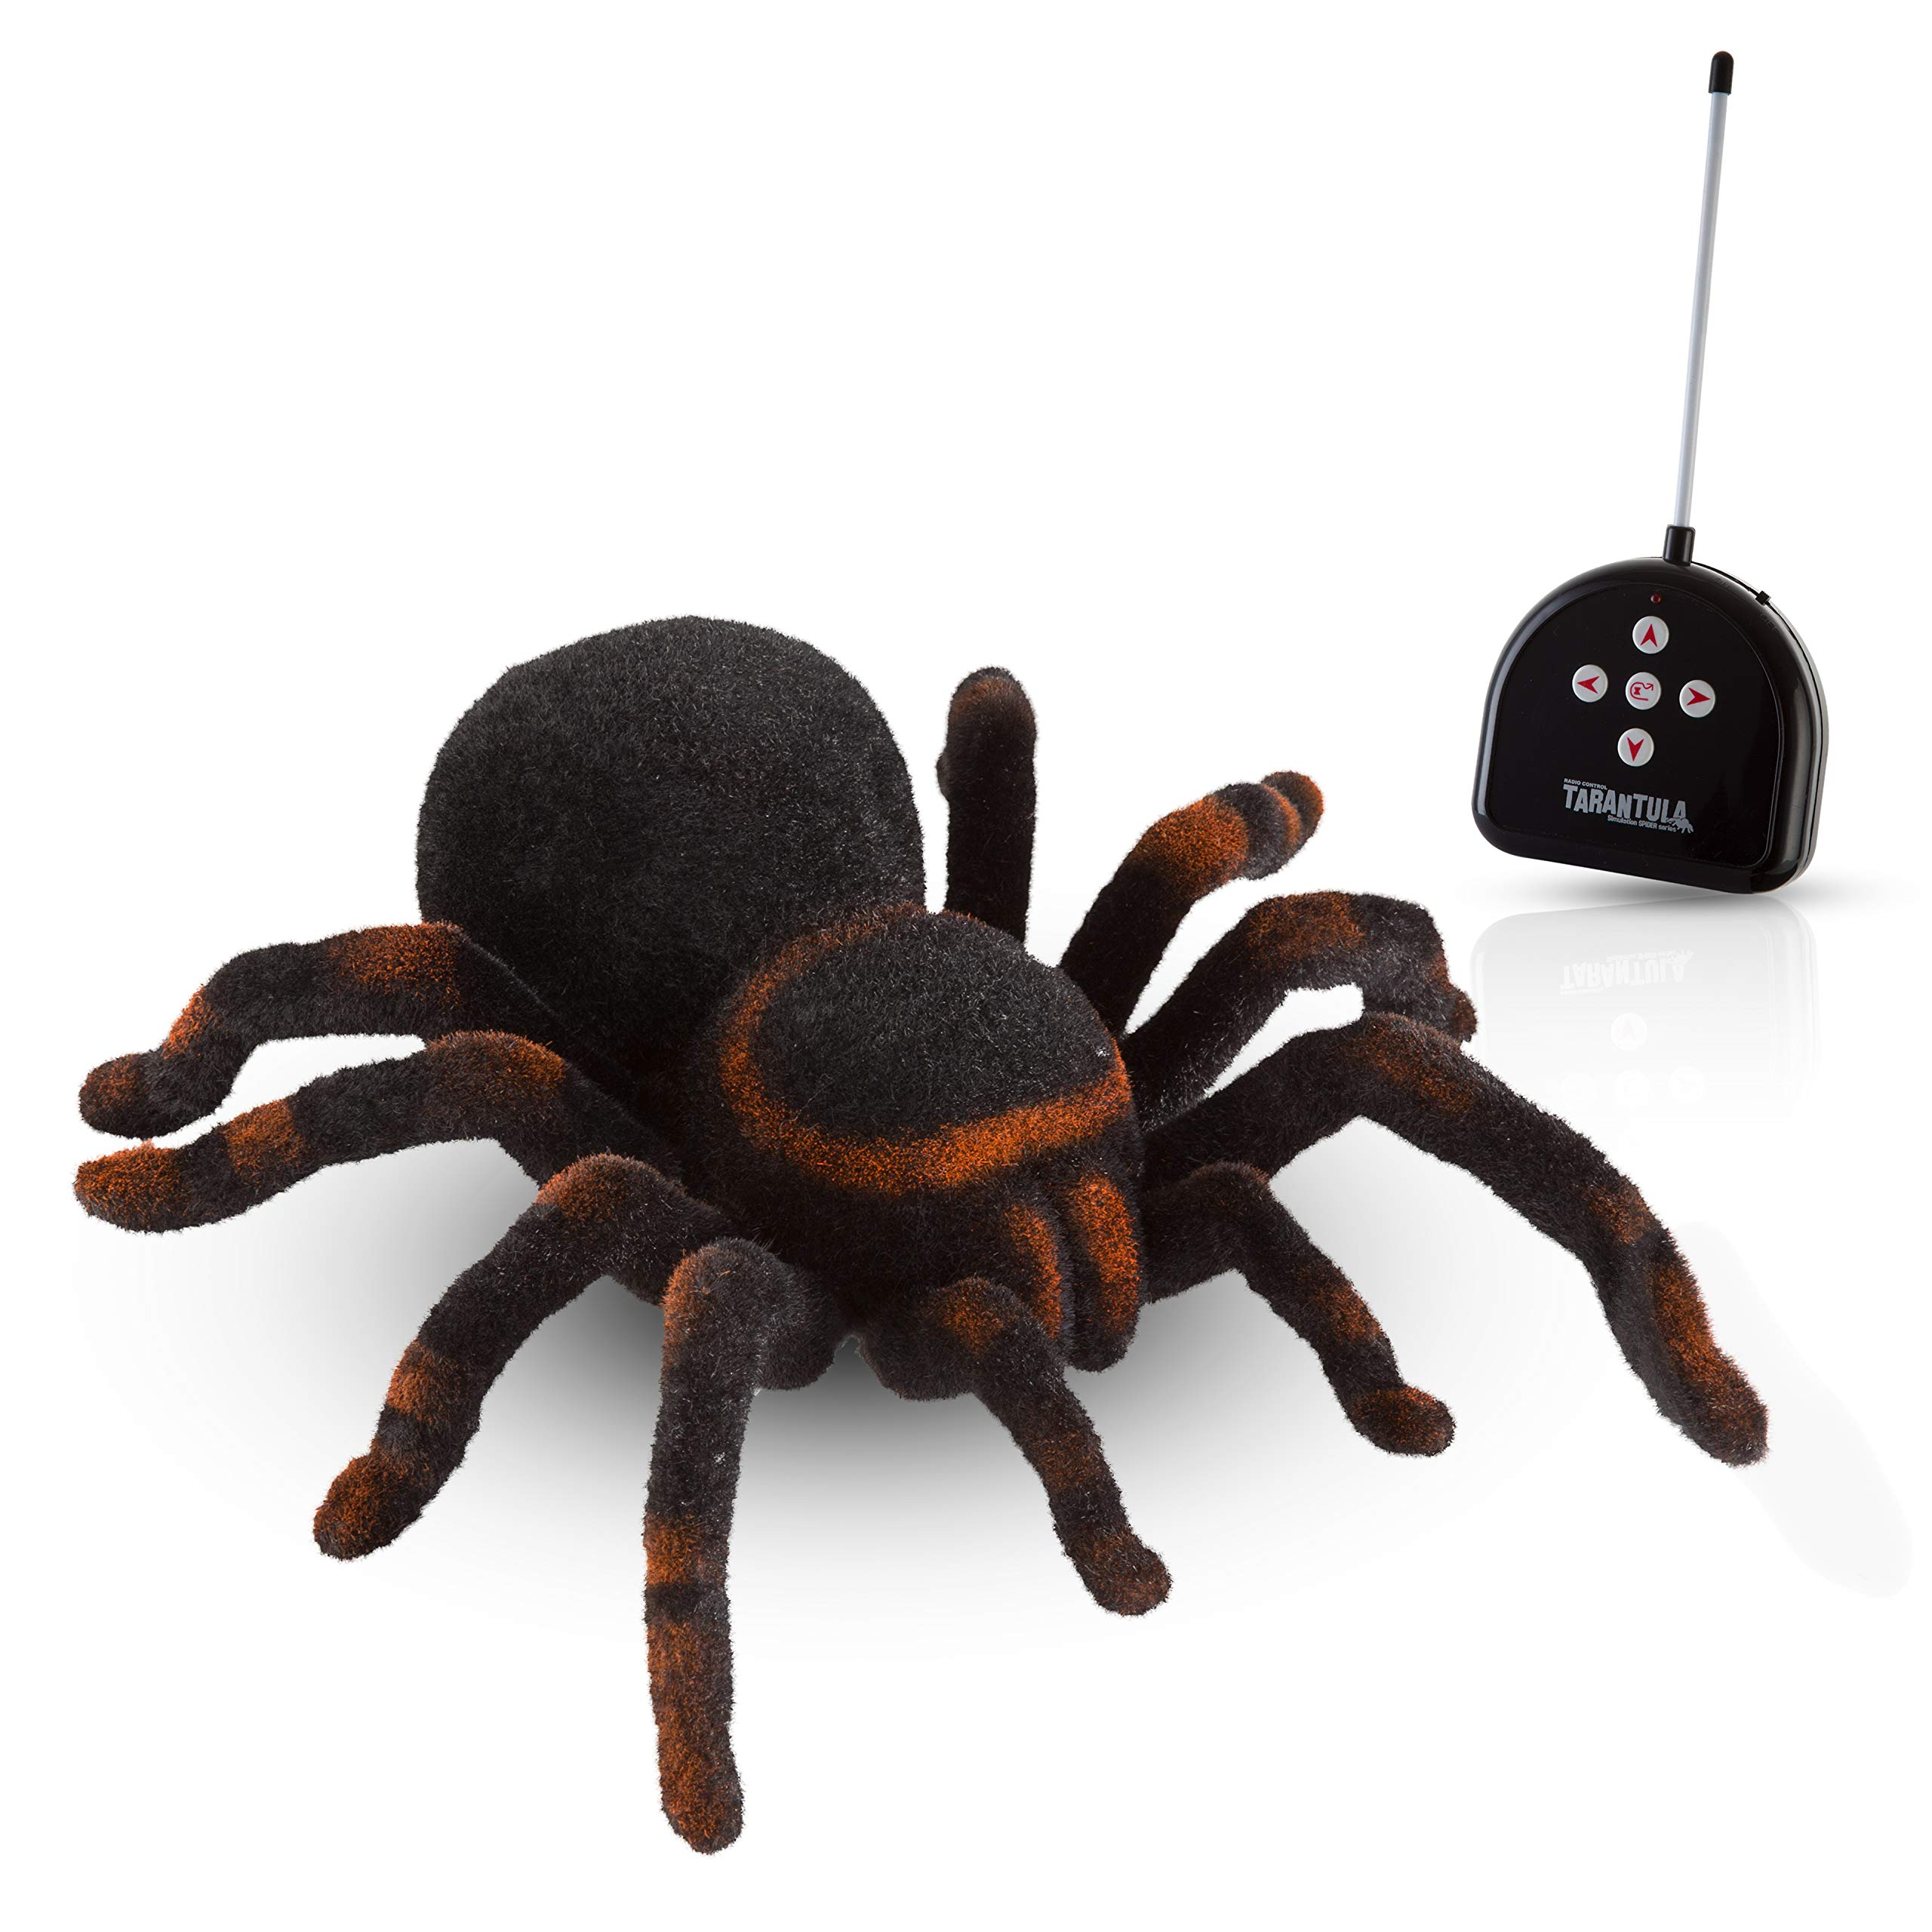 Advanced Play Remote Control Spider Toy Realistic 8 Inch Tarantula Animal Figures Funny Prank Joke Scare Gag Gifts for Halloween Christmas Party decor Birthdays Holidays April Fool Pranks by Advanced Play